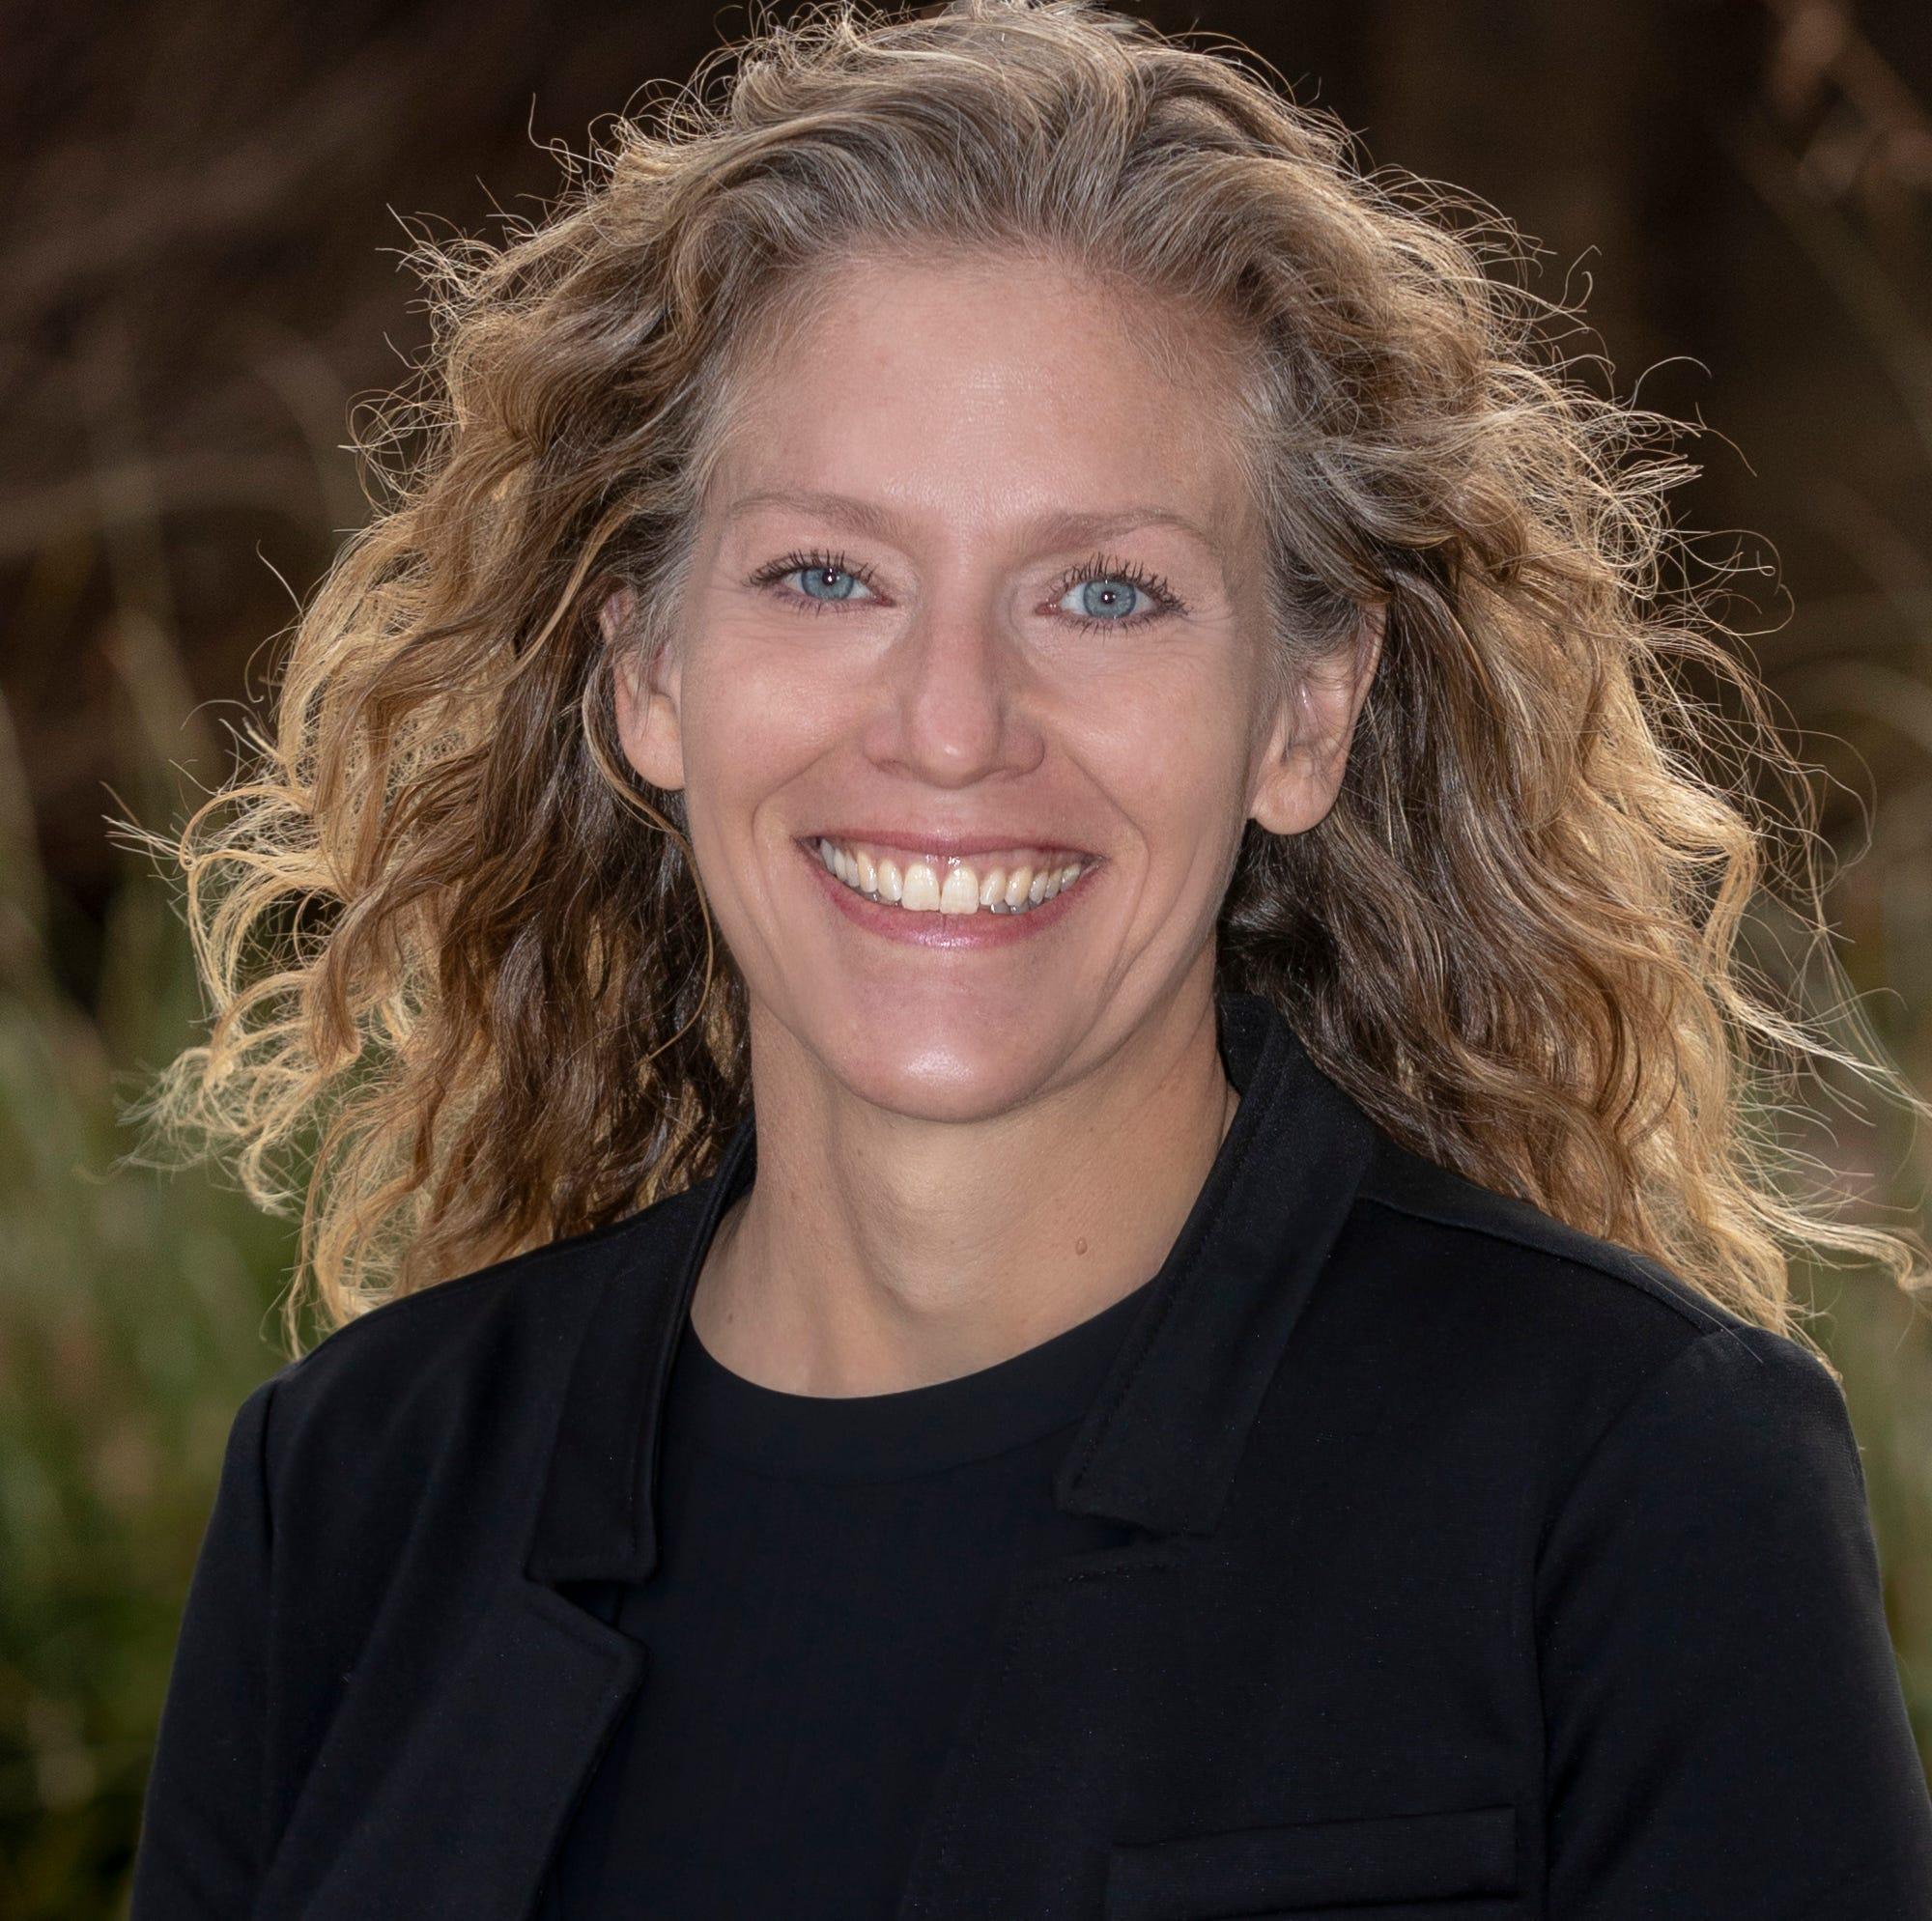 Well-planned, sustainable development can be good for communities: Joni Carswell